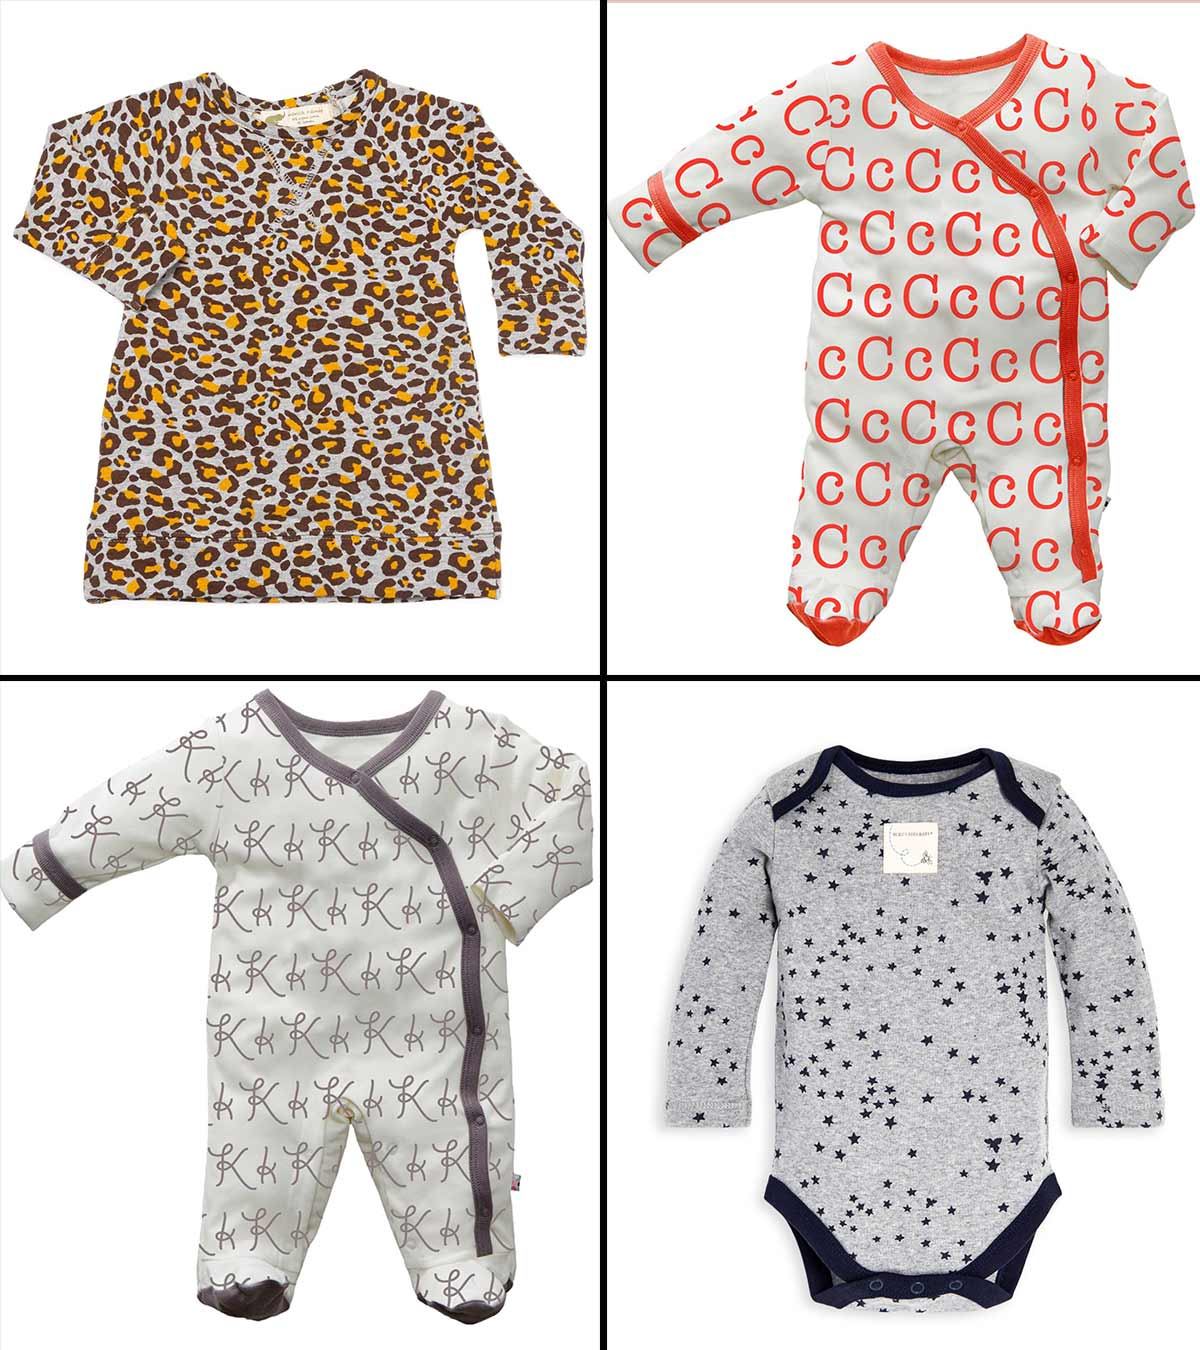 5 Best Organic Baby Clothing Brands Of 5